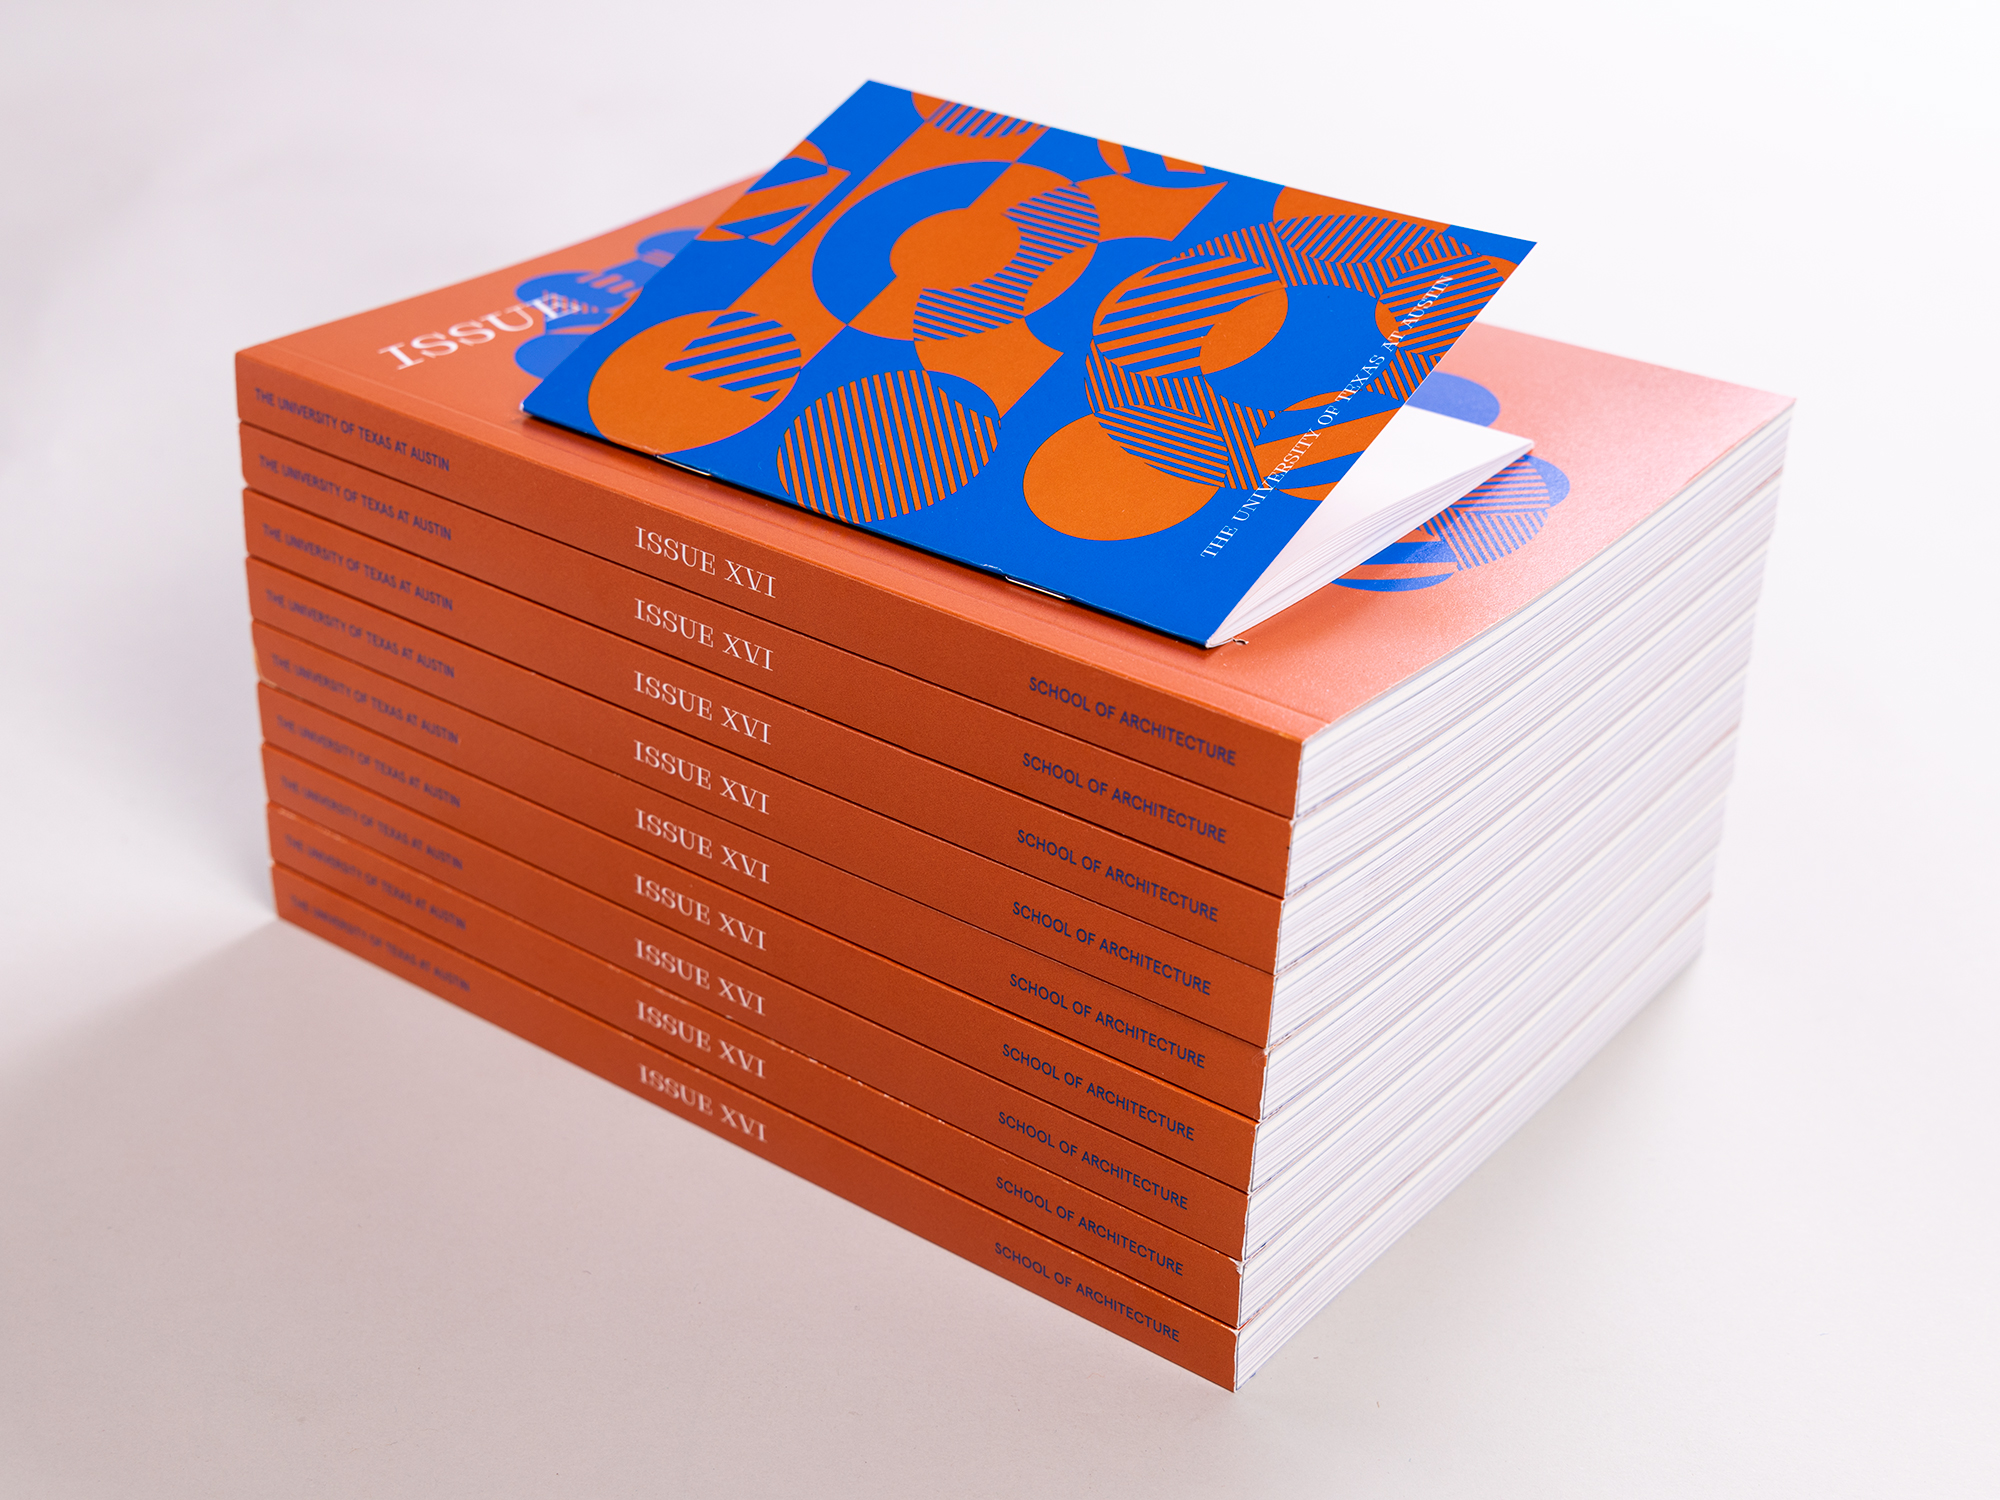 Stack of copies of ISSUE XVI against a white backdrop with the orange spines prominent